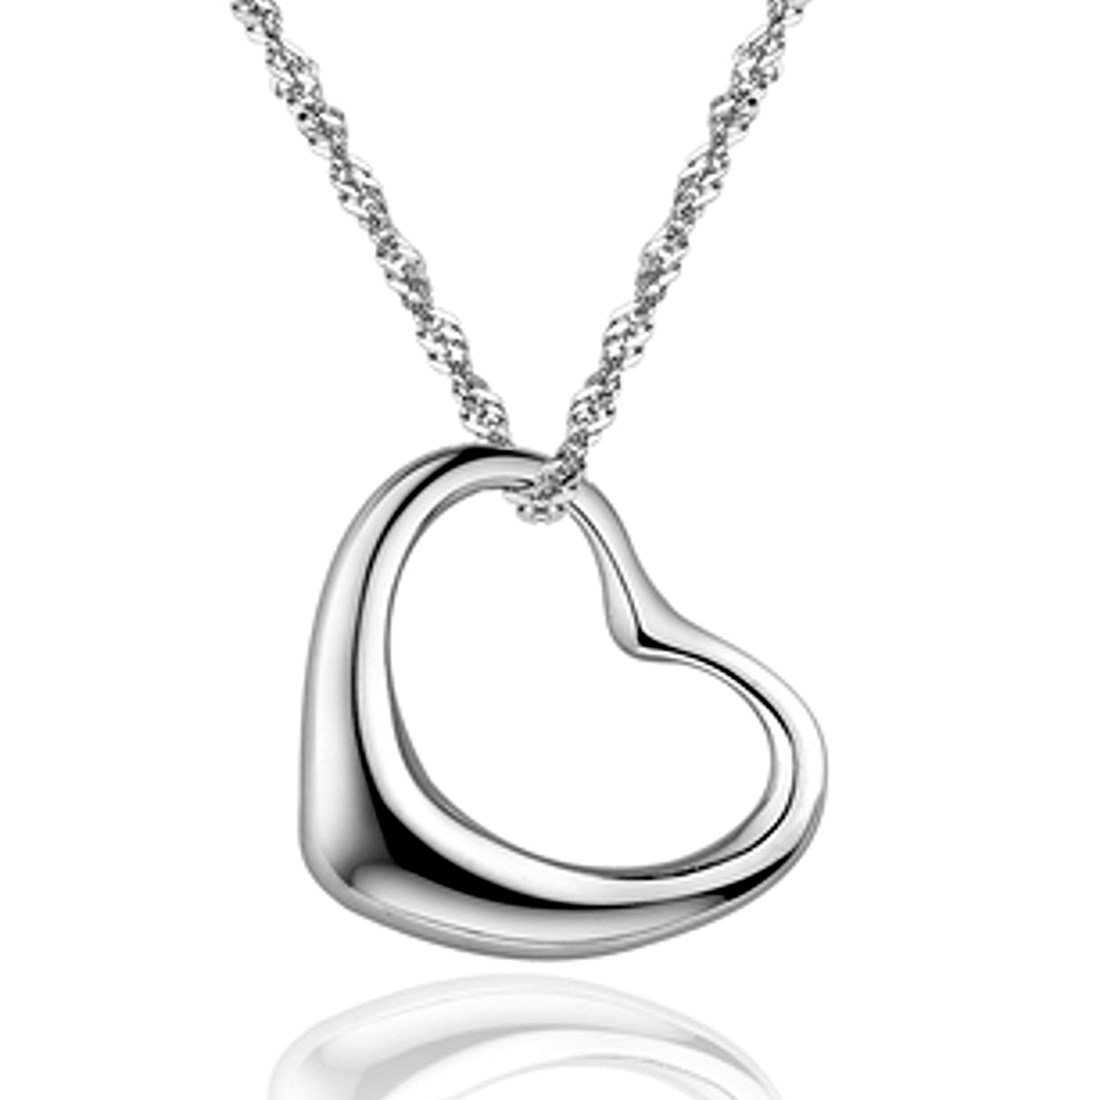 SWEETIE 8 ''Simple Heart'' White Gold Plated Silver Pendant Necklace 16'' for Women - Shiny Top Quality Jewelry for Party, Wedding or Casual Use - Great Gift for Girls or Lady| Gift Box Included